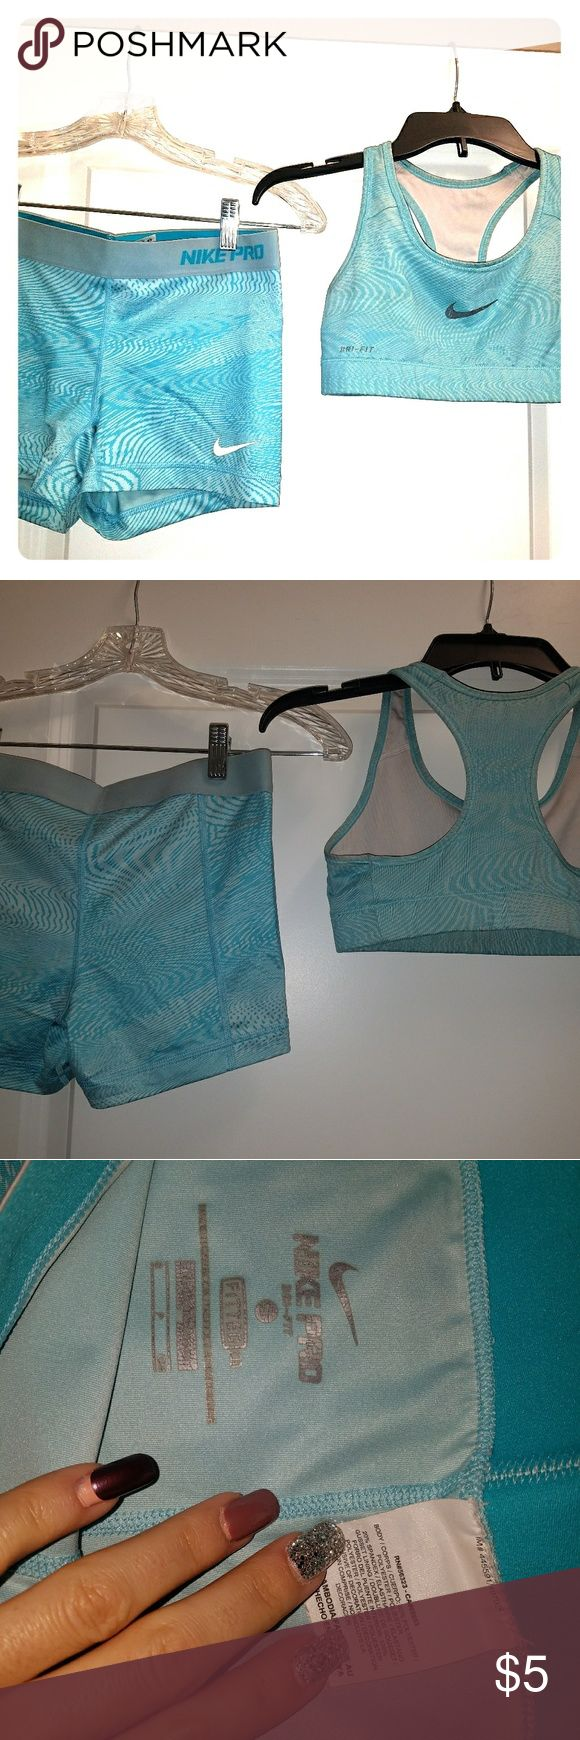 NIKE PRO Sports Bra & Matching Shorts Set NIKE PRO Sports Bra & Matching Shorts Set Bra Size: XS Bra Color: Teal Bra Condition: Used Shorts Size: S Shorts Color: Teal  Shorts Condition: Used Nike Other